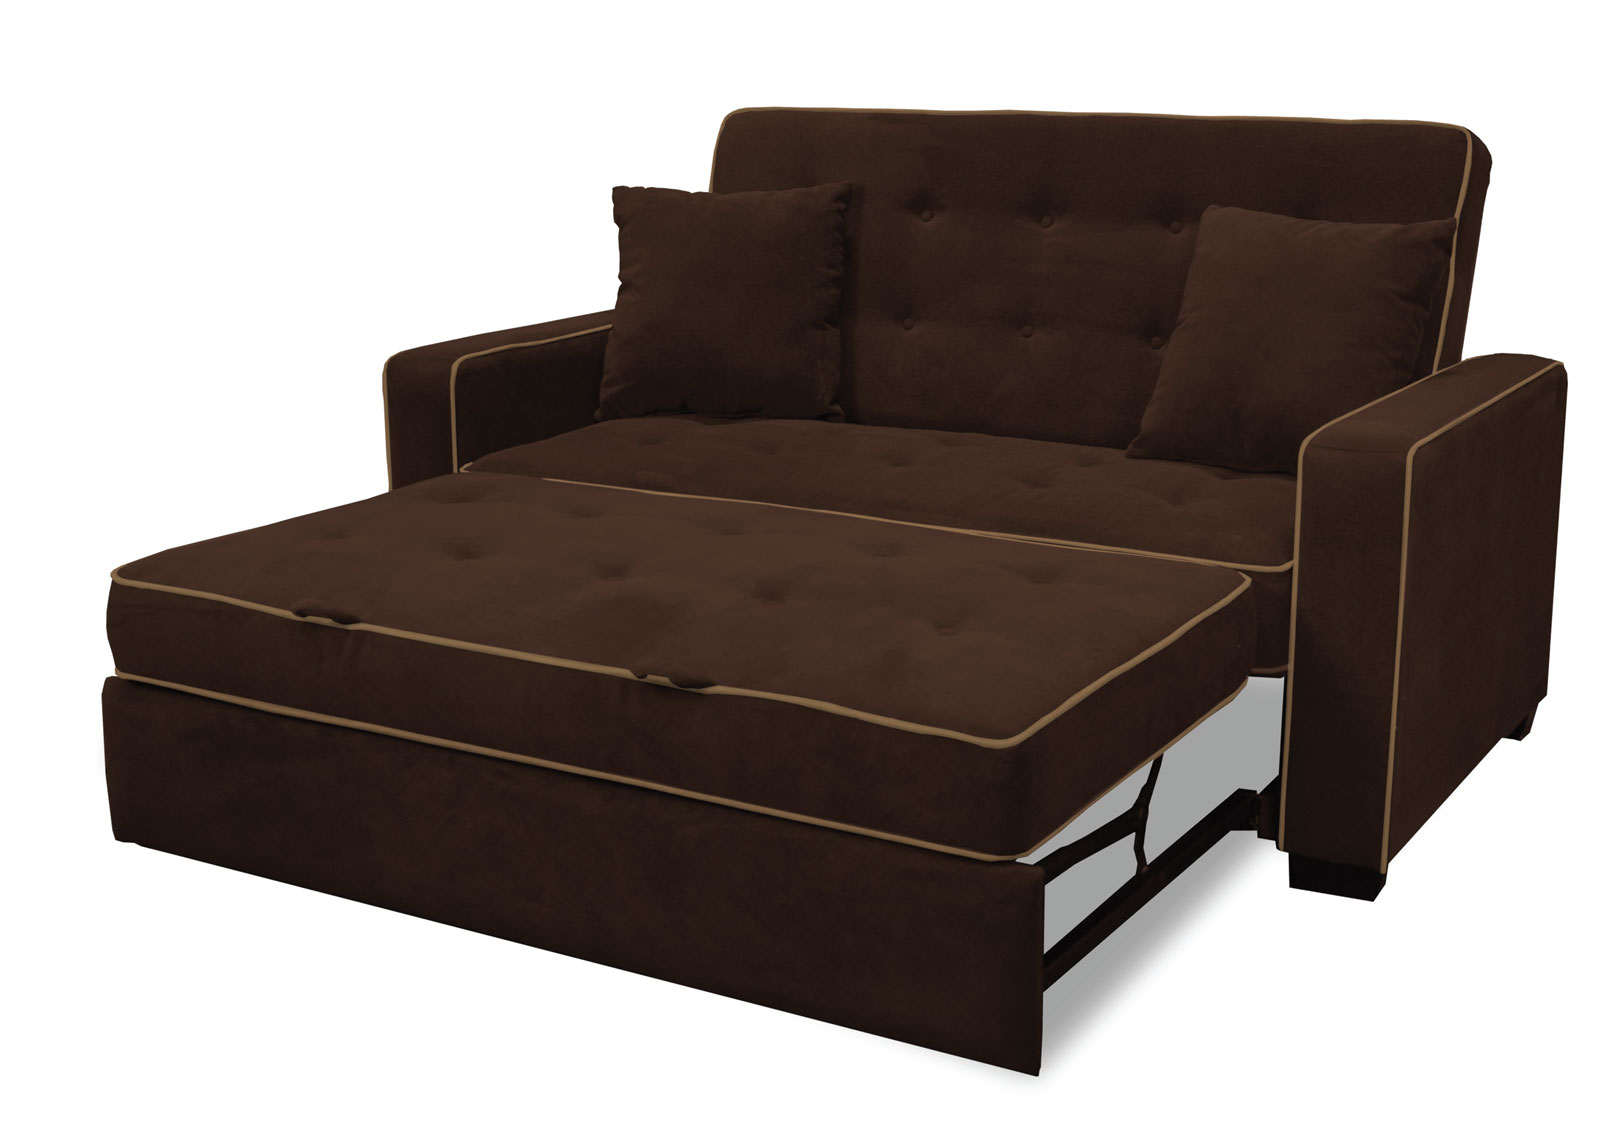 Moheda Sofa Bed | Flip Sofa Bed | Pull Out Sofa Bed